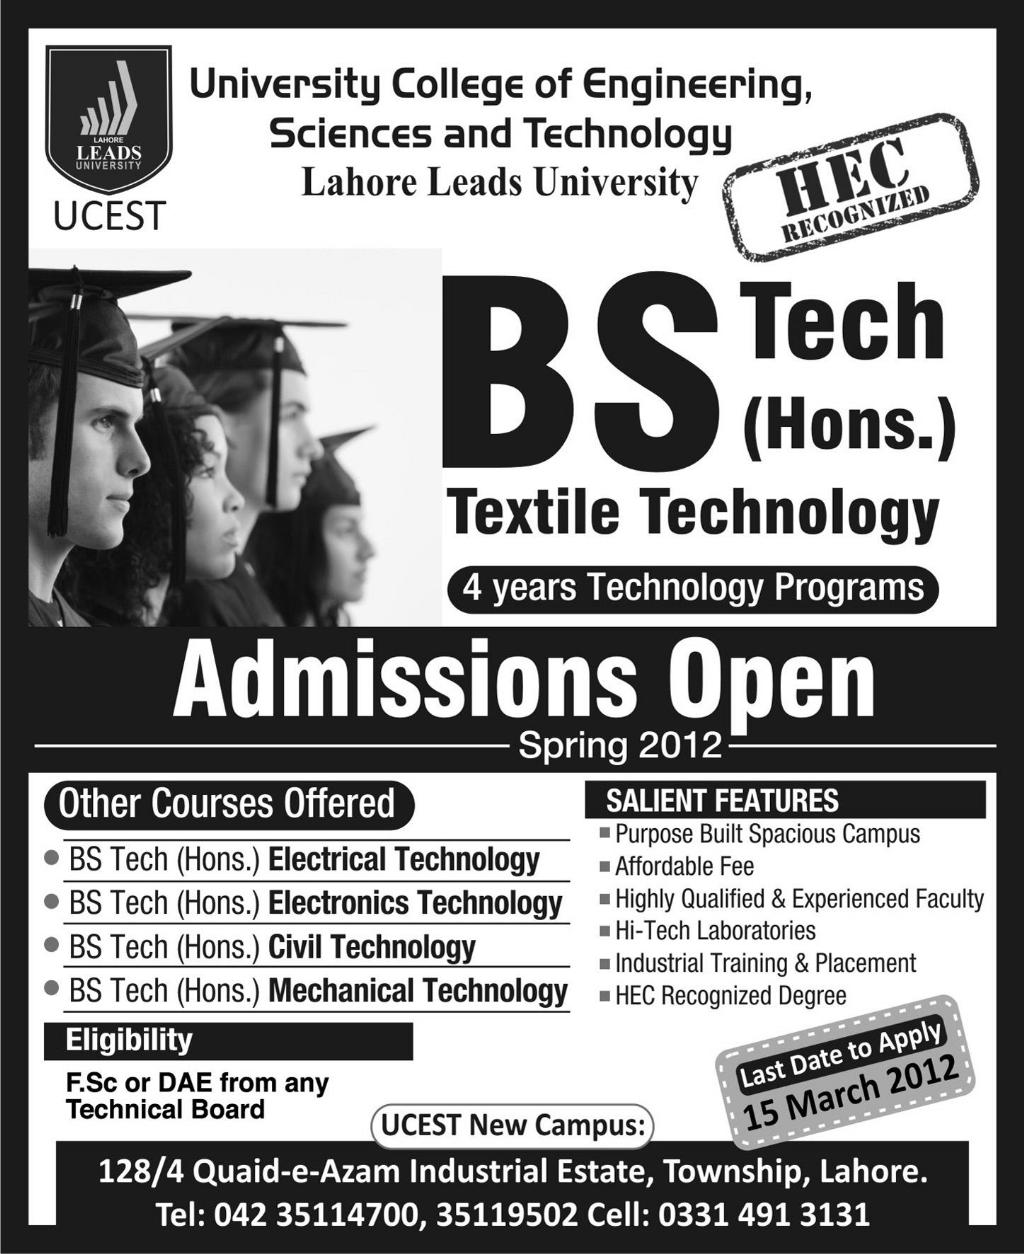 University College of Engineering Sciences And Technology Lahore Admissions